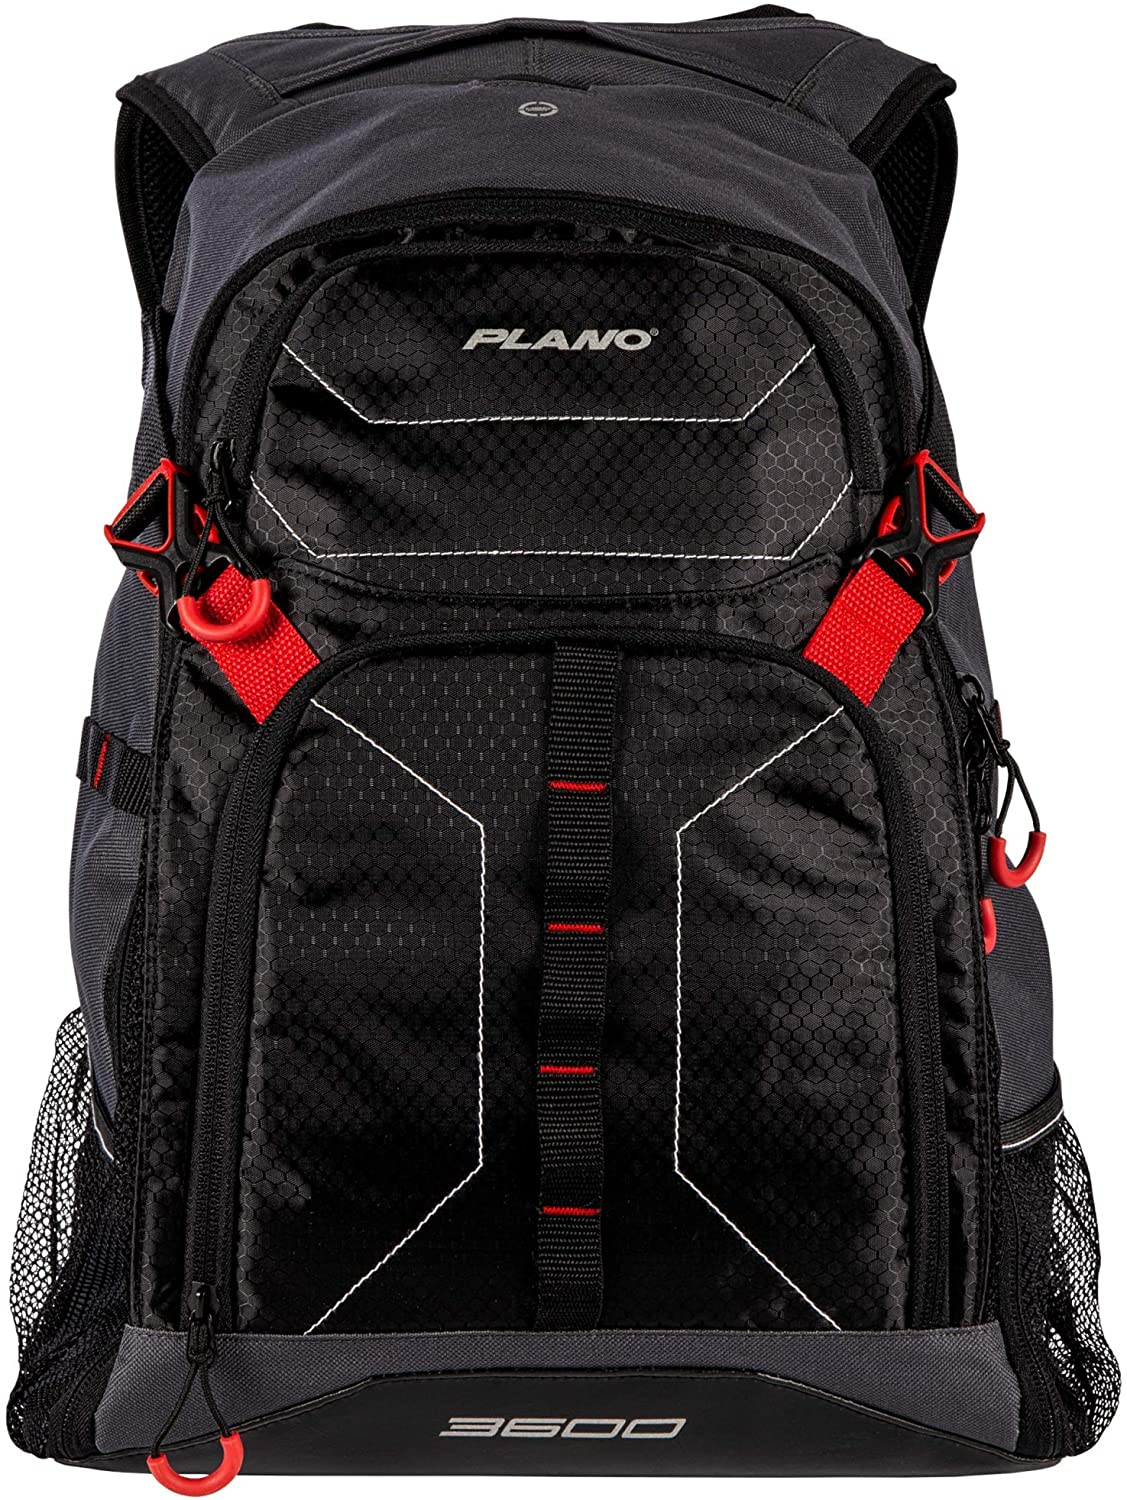 4-Plano tackle backpack